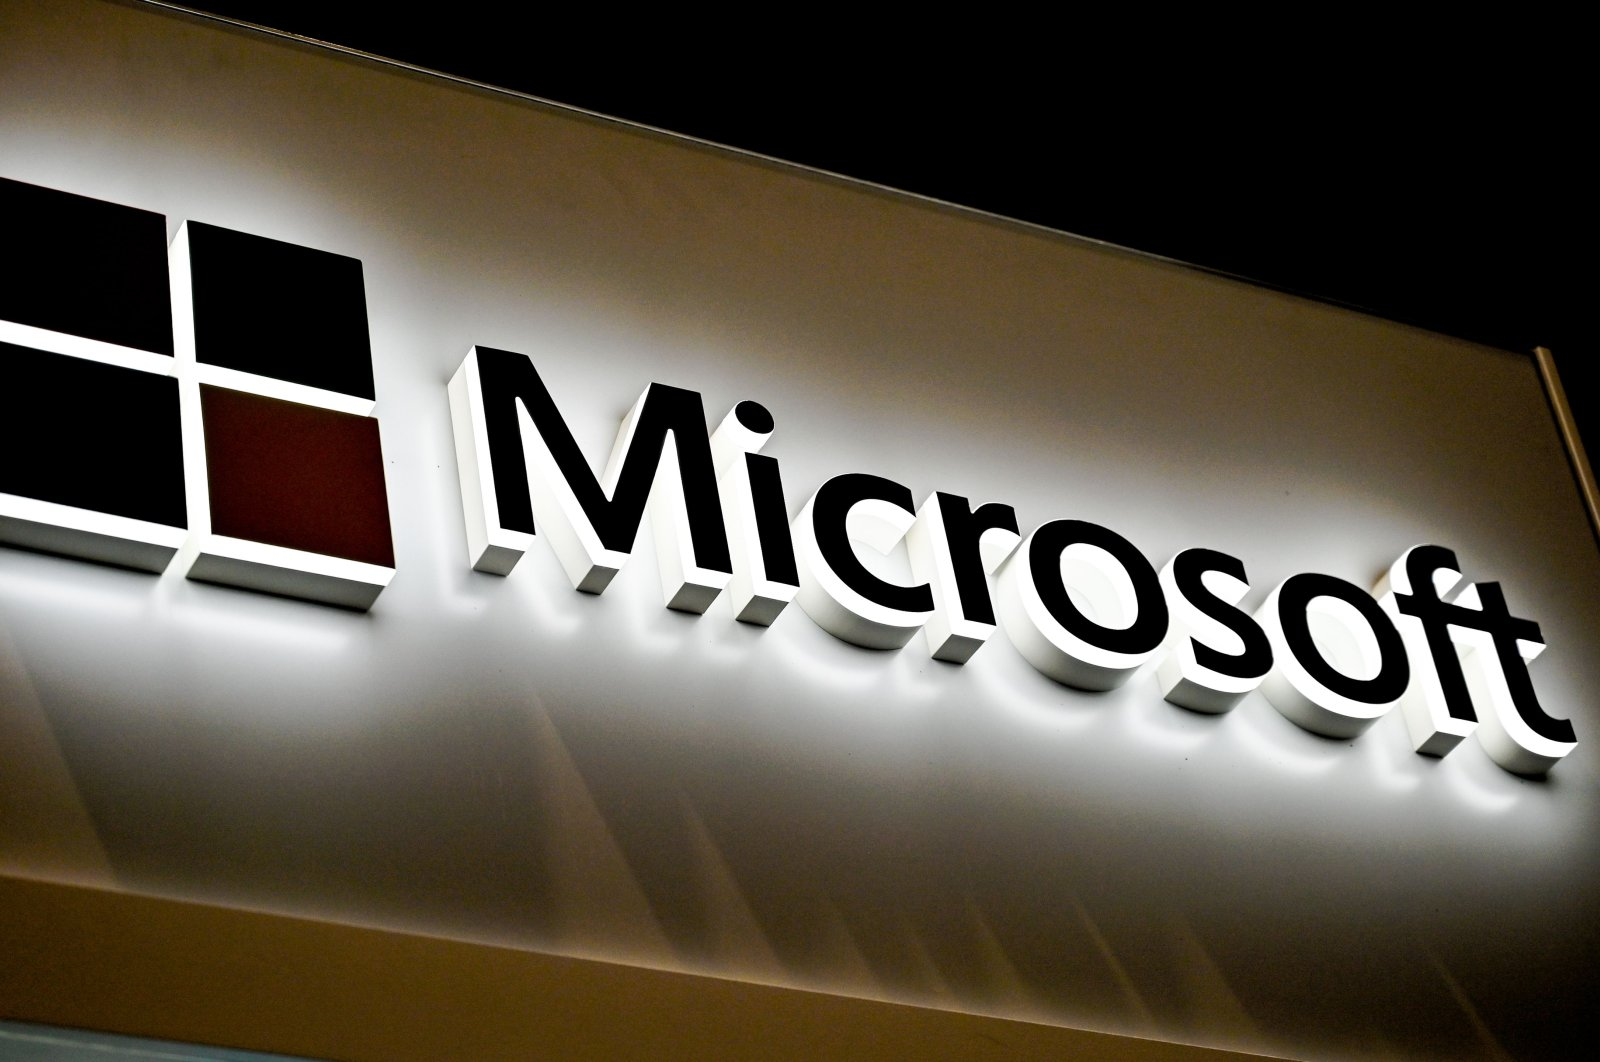 The Microsoft logo at the International Cybersecurity Forum (FIC) in Lille, Jan. 28, 2020. (AFP Photo)